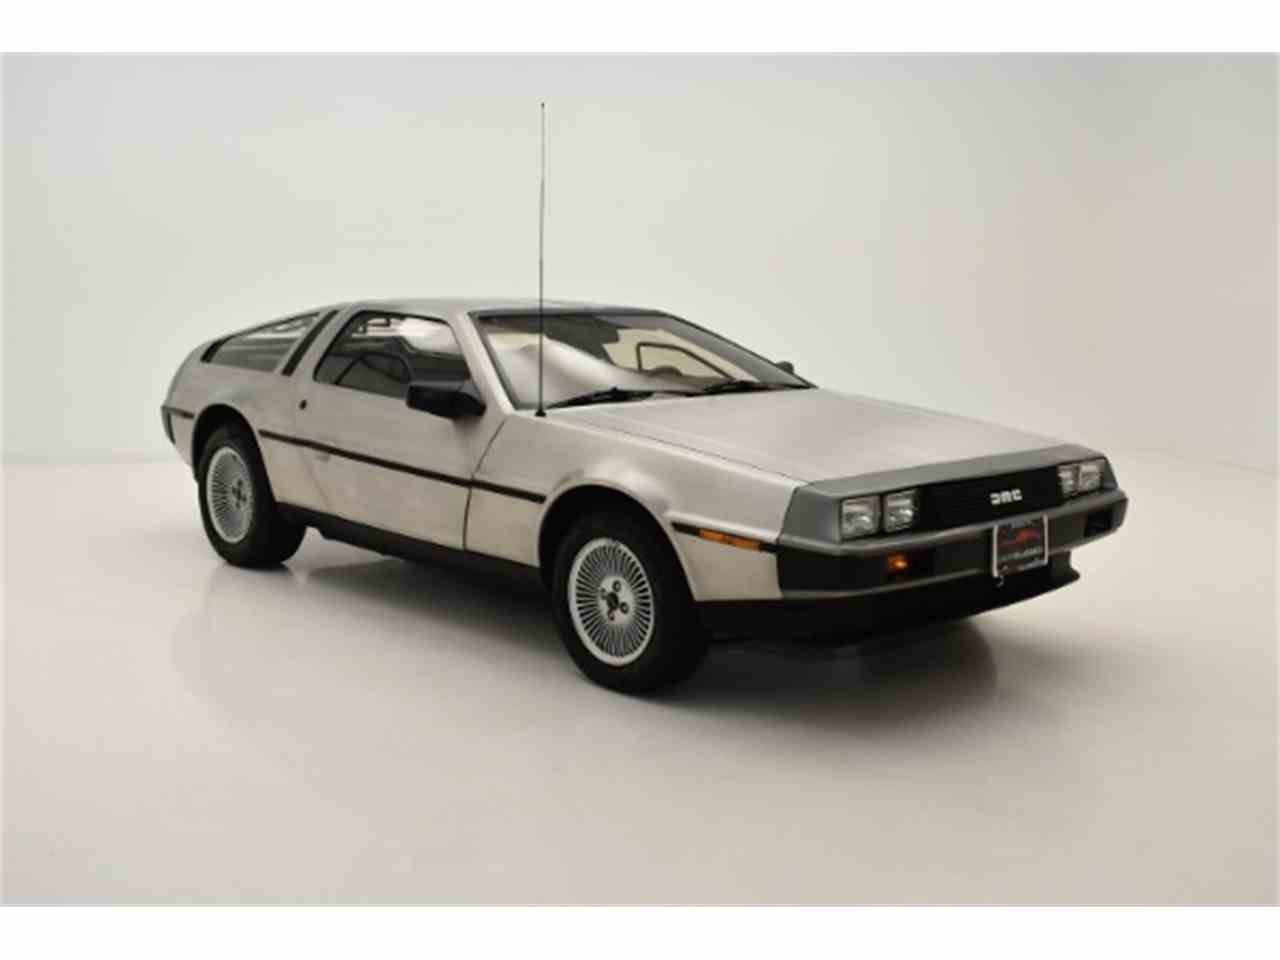 1981 DeLorean DMC-12 for Sale - CC-986724